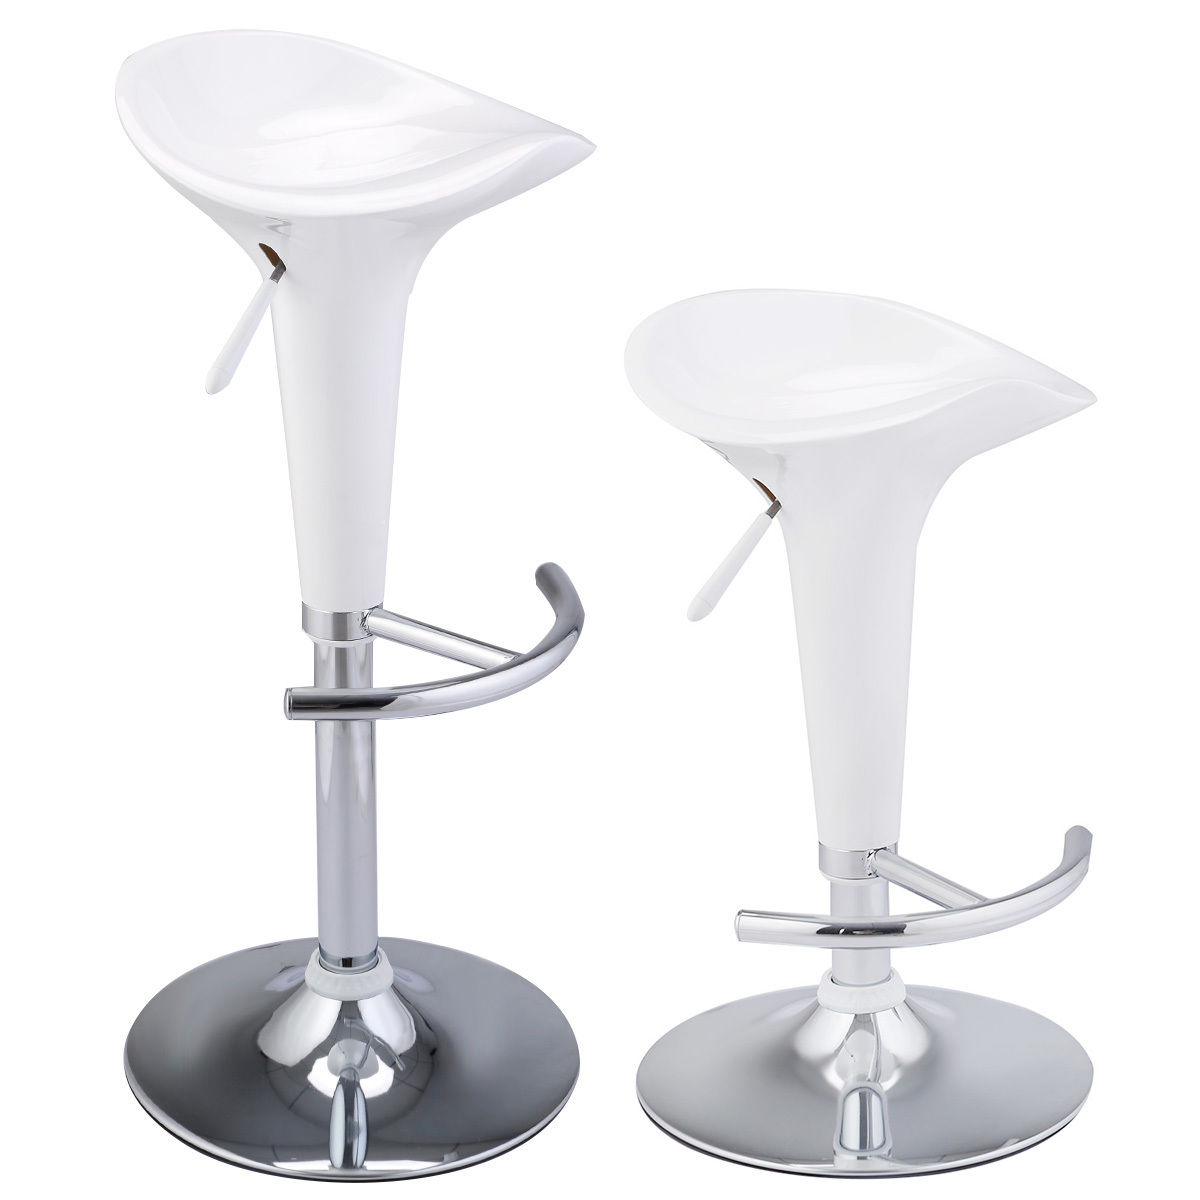 Giantex 2 Pcs Modern Bombo Style Swivel Barstools Adjustable Counter Chair Bar Stools White Pub Lifting Furniture HW51432WH